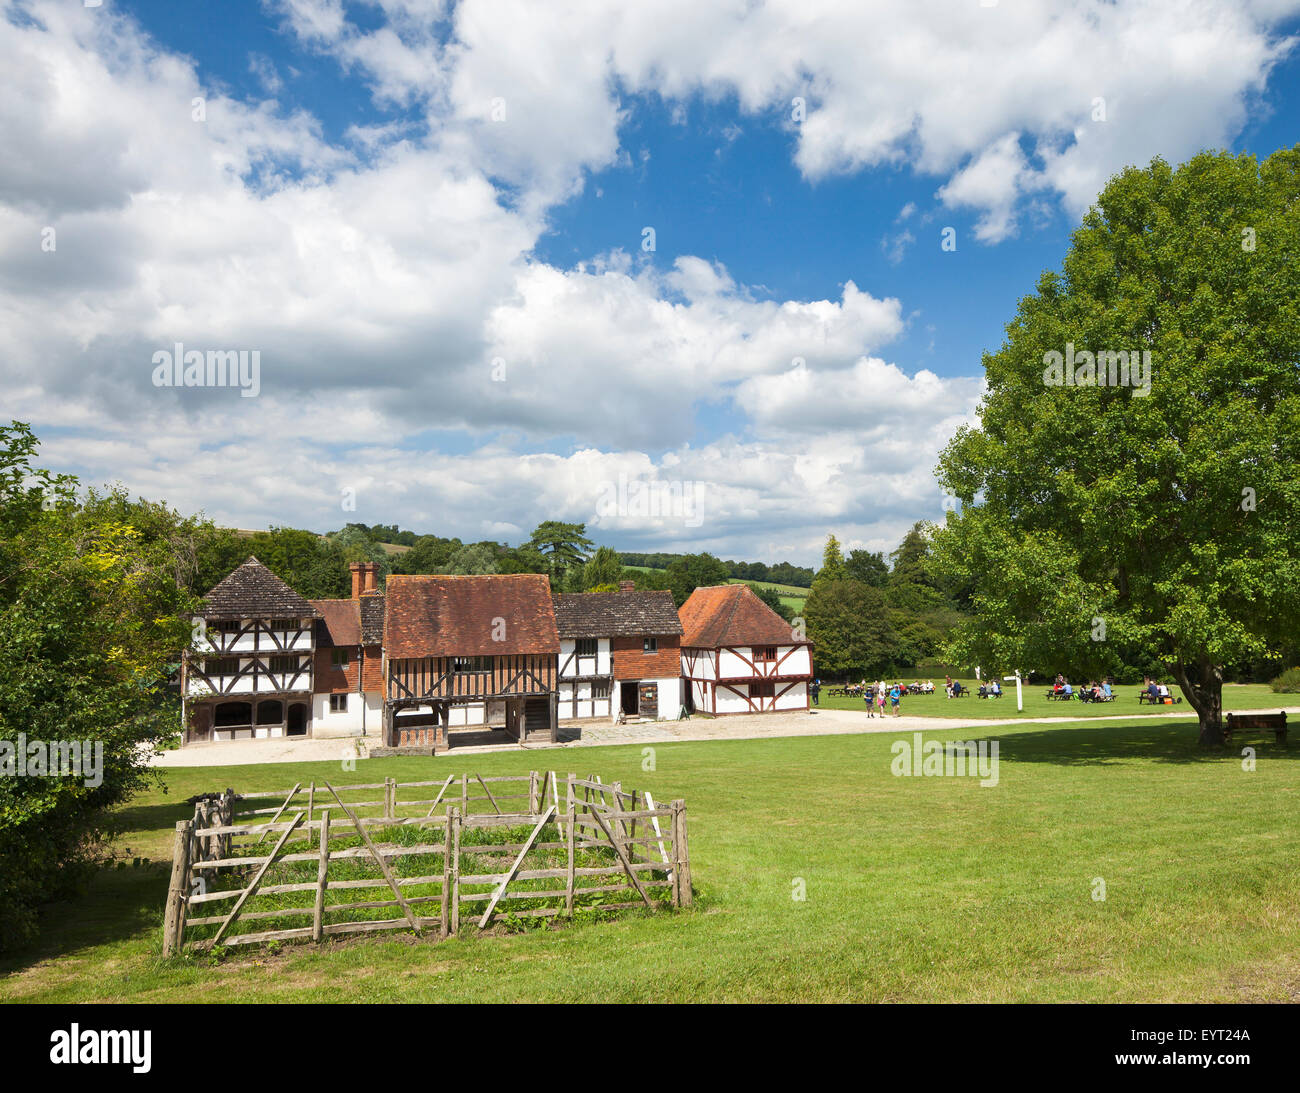 The Weald and Downland Open Air Museum, Singleton, West Sussex. - Stock Image